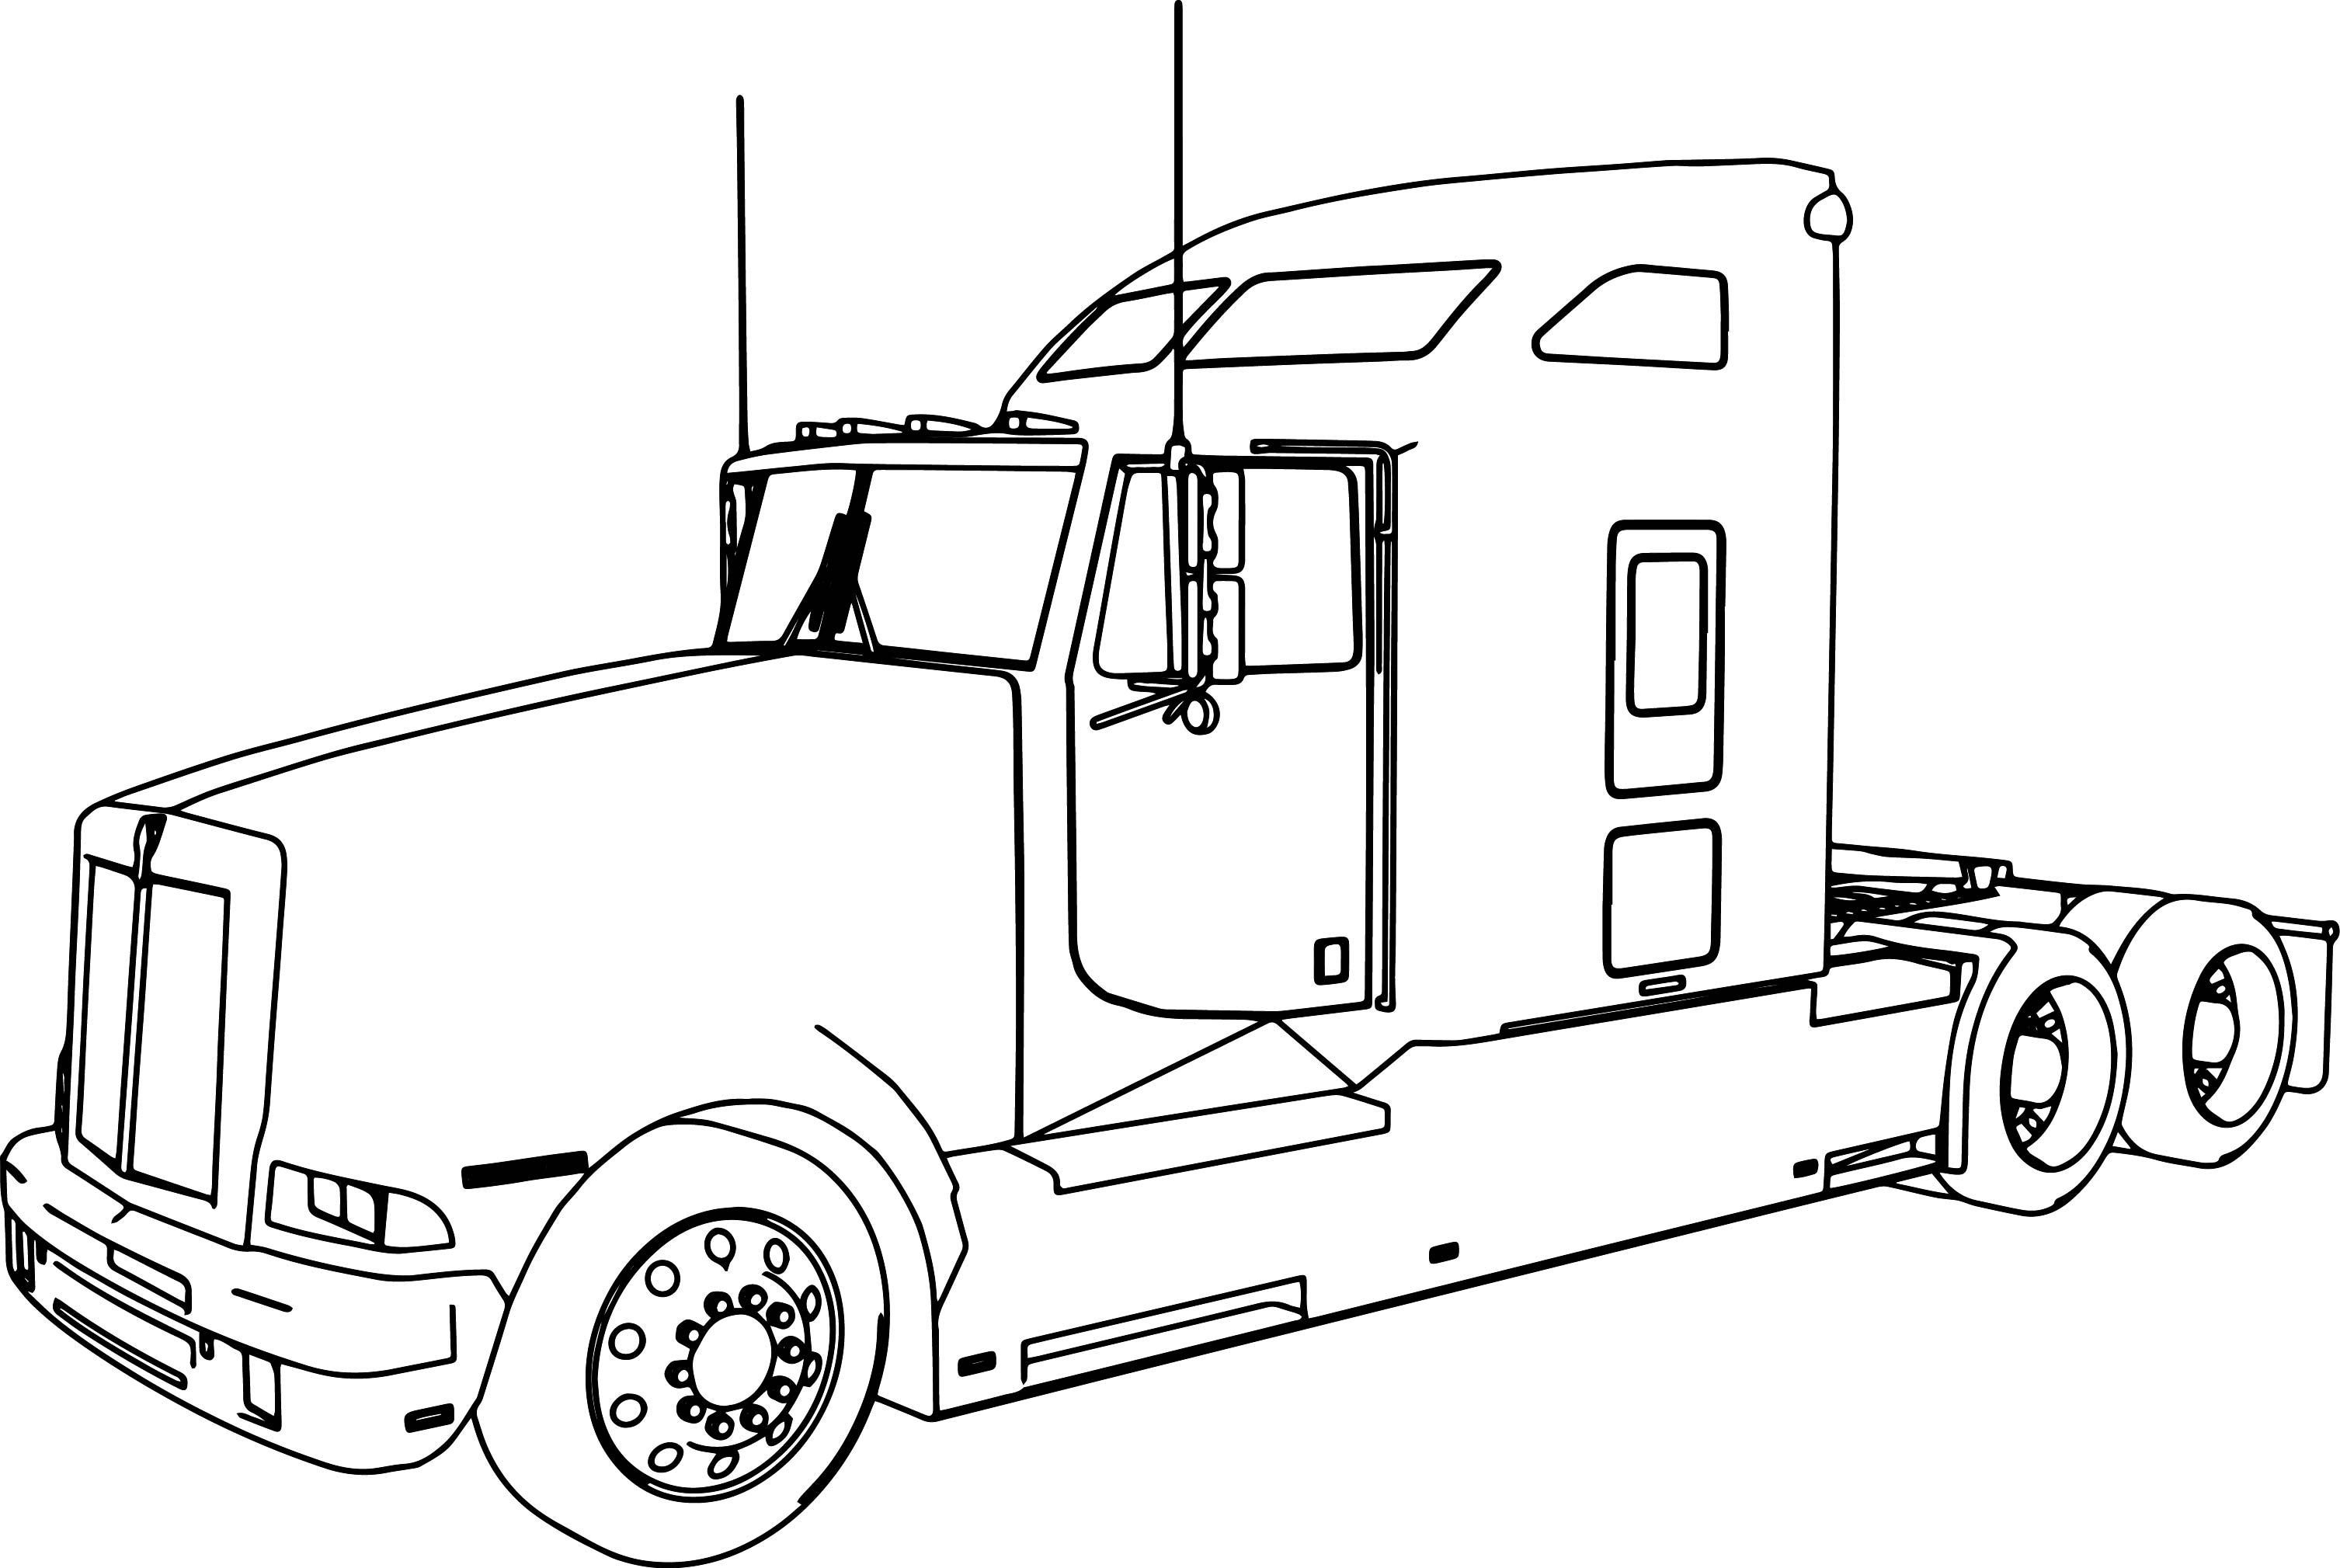 Big Truck Coloring Page Truck Coloring Pages Tractor Coloring Pages Monster Truck Coloring Pages